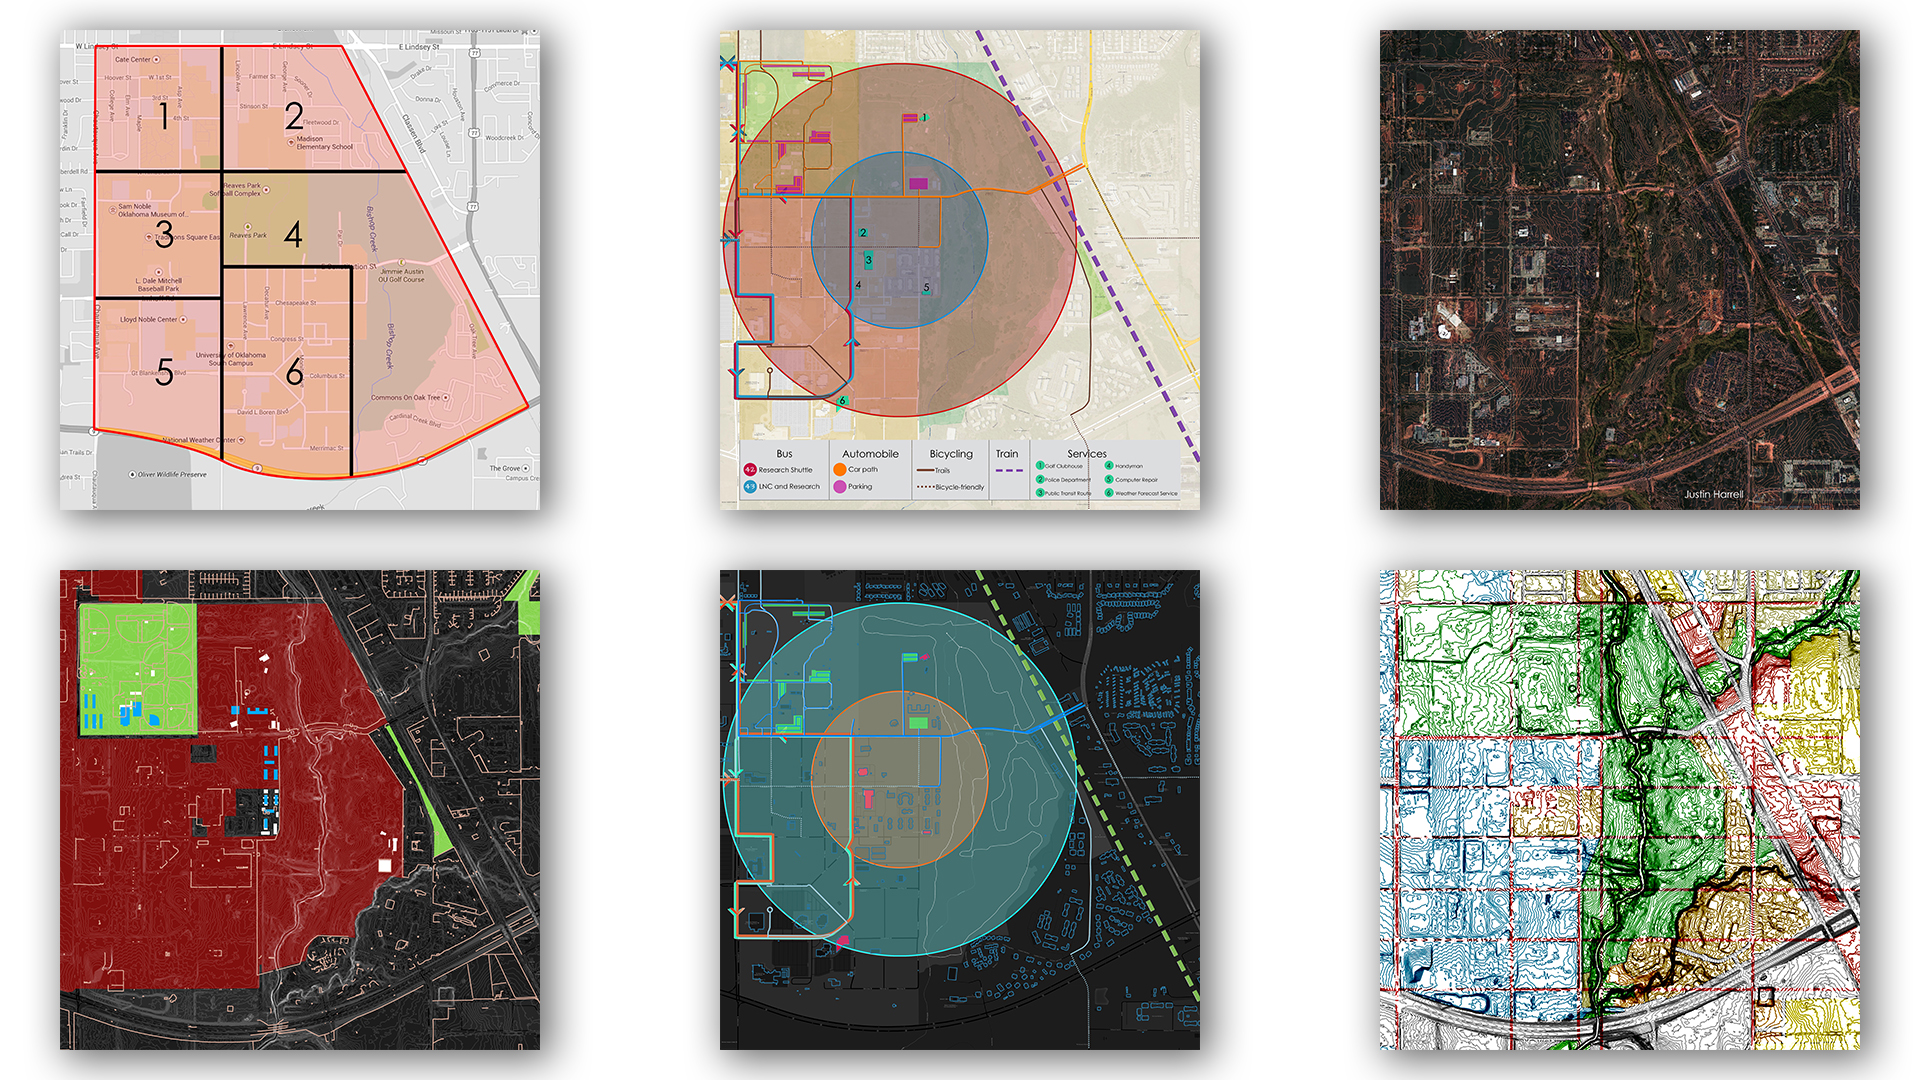 The process of creating the master plan of Oculus City began with a series of urban mappings for the current site that organizes information of the existing and past conditions.